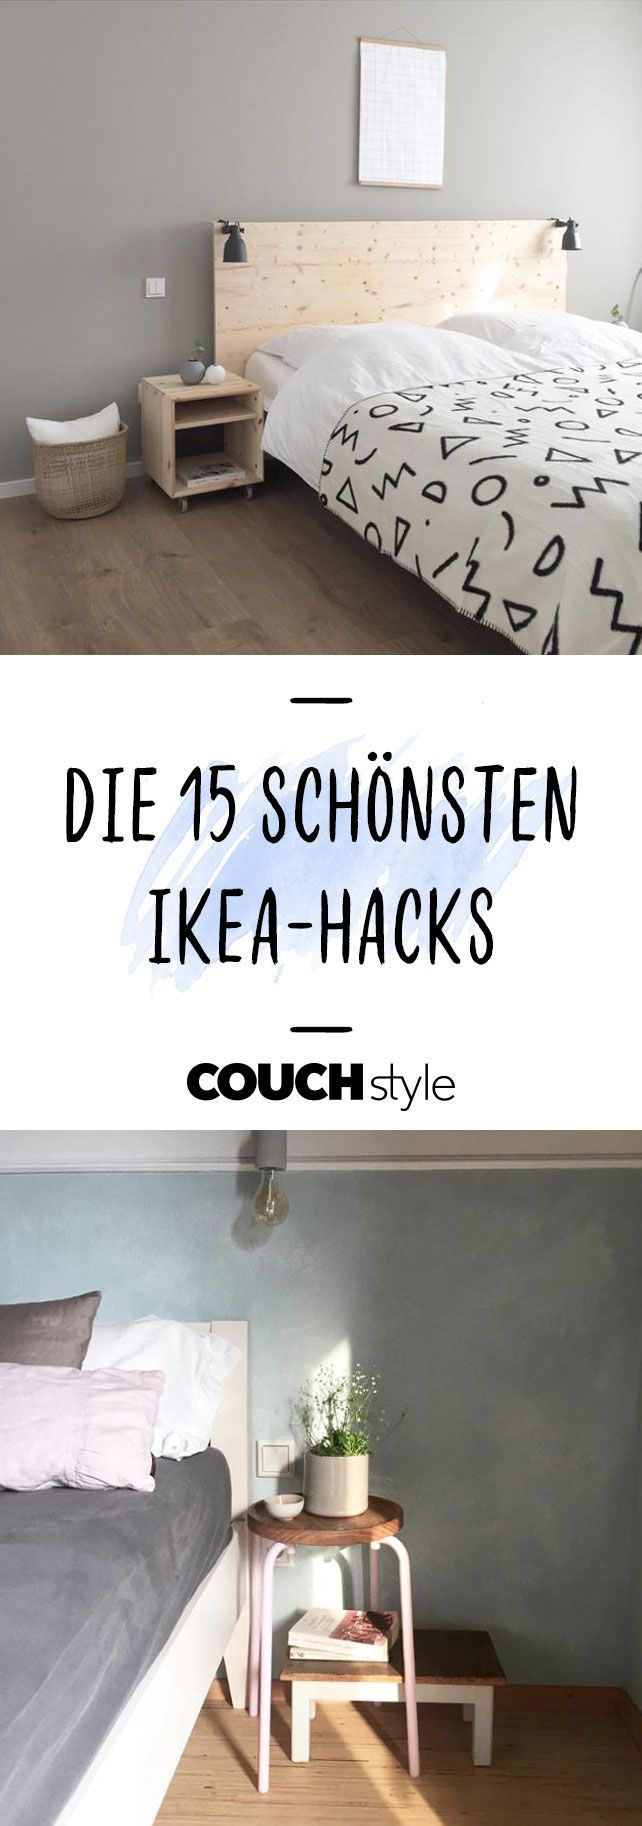 Ikea hacks: How to make your furniture unique!